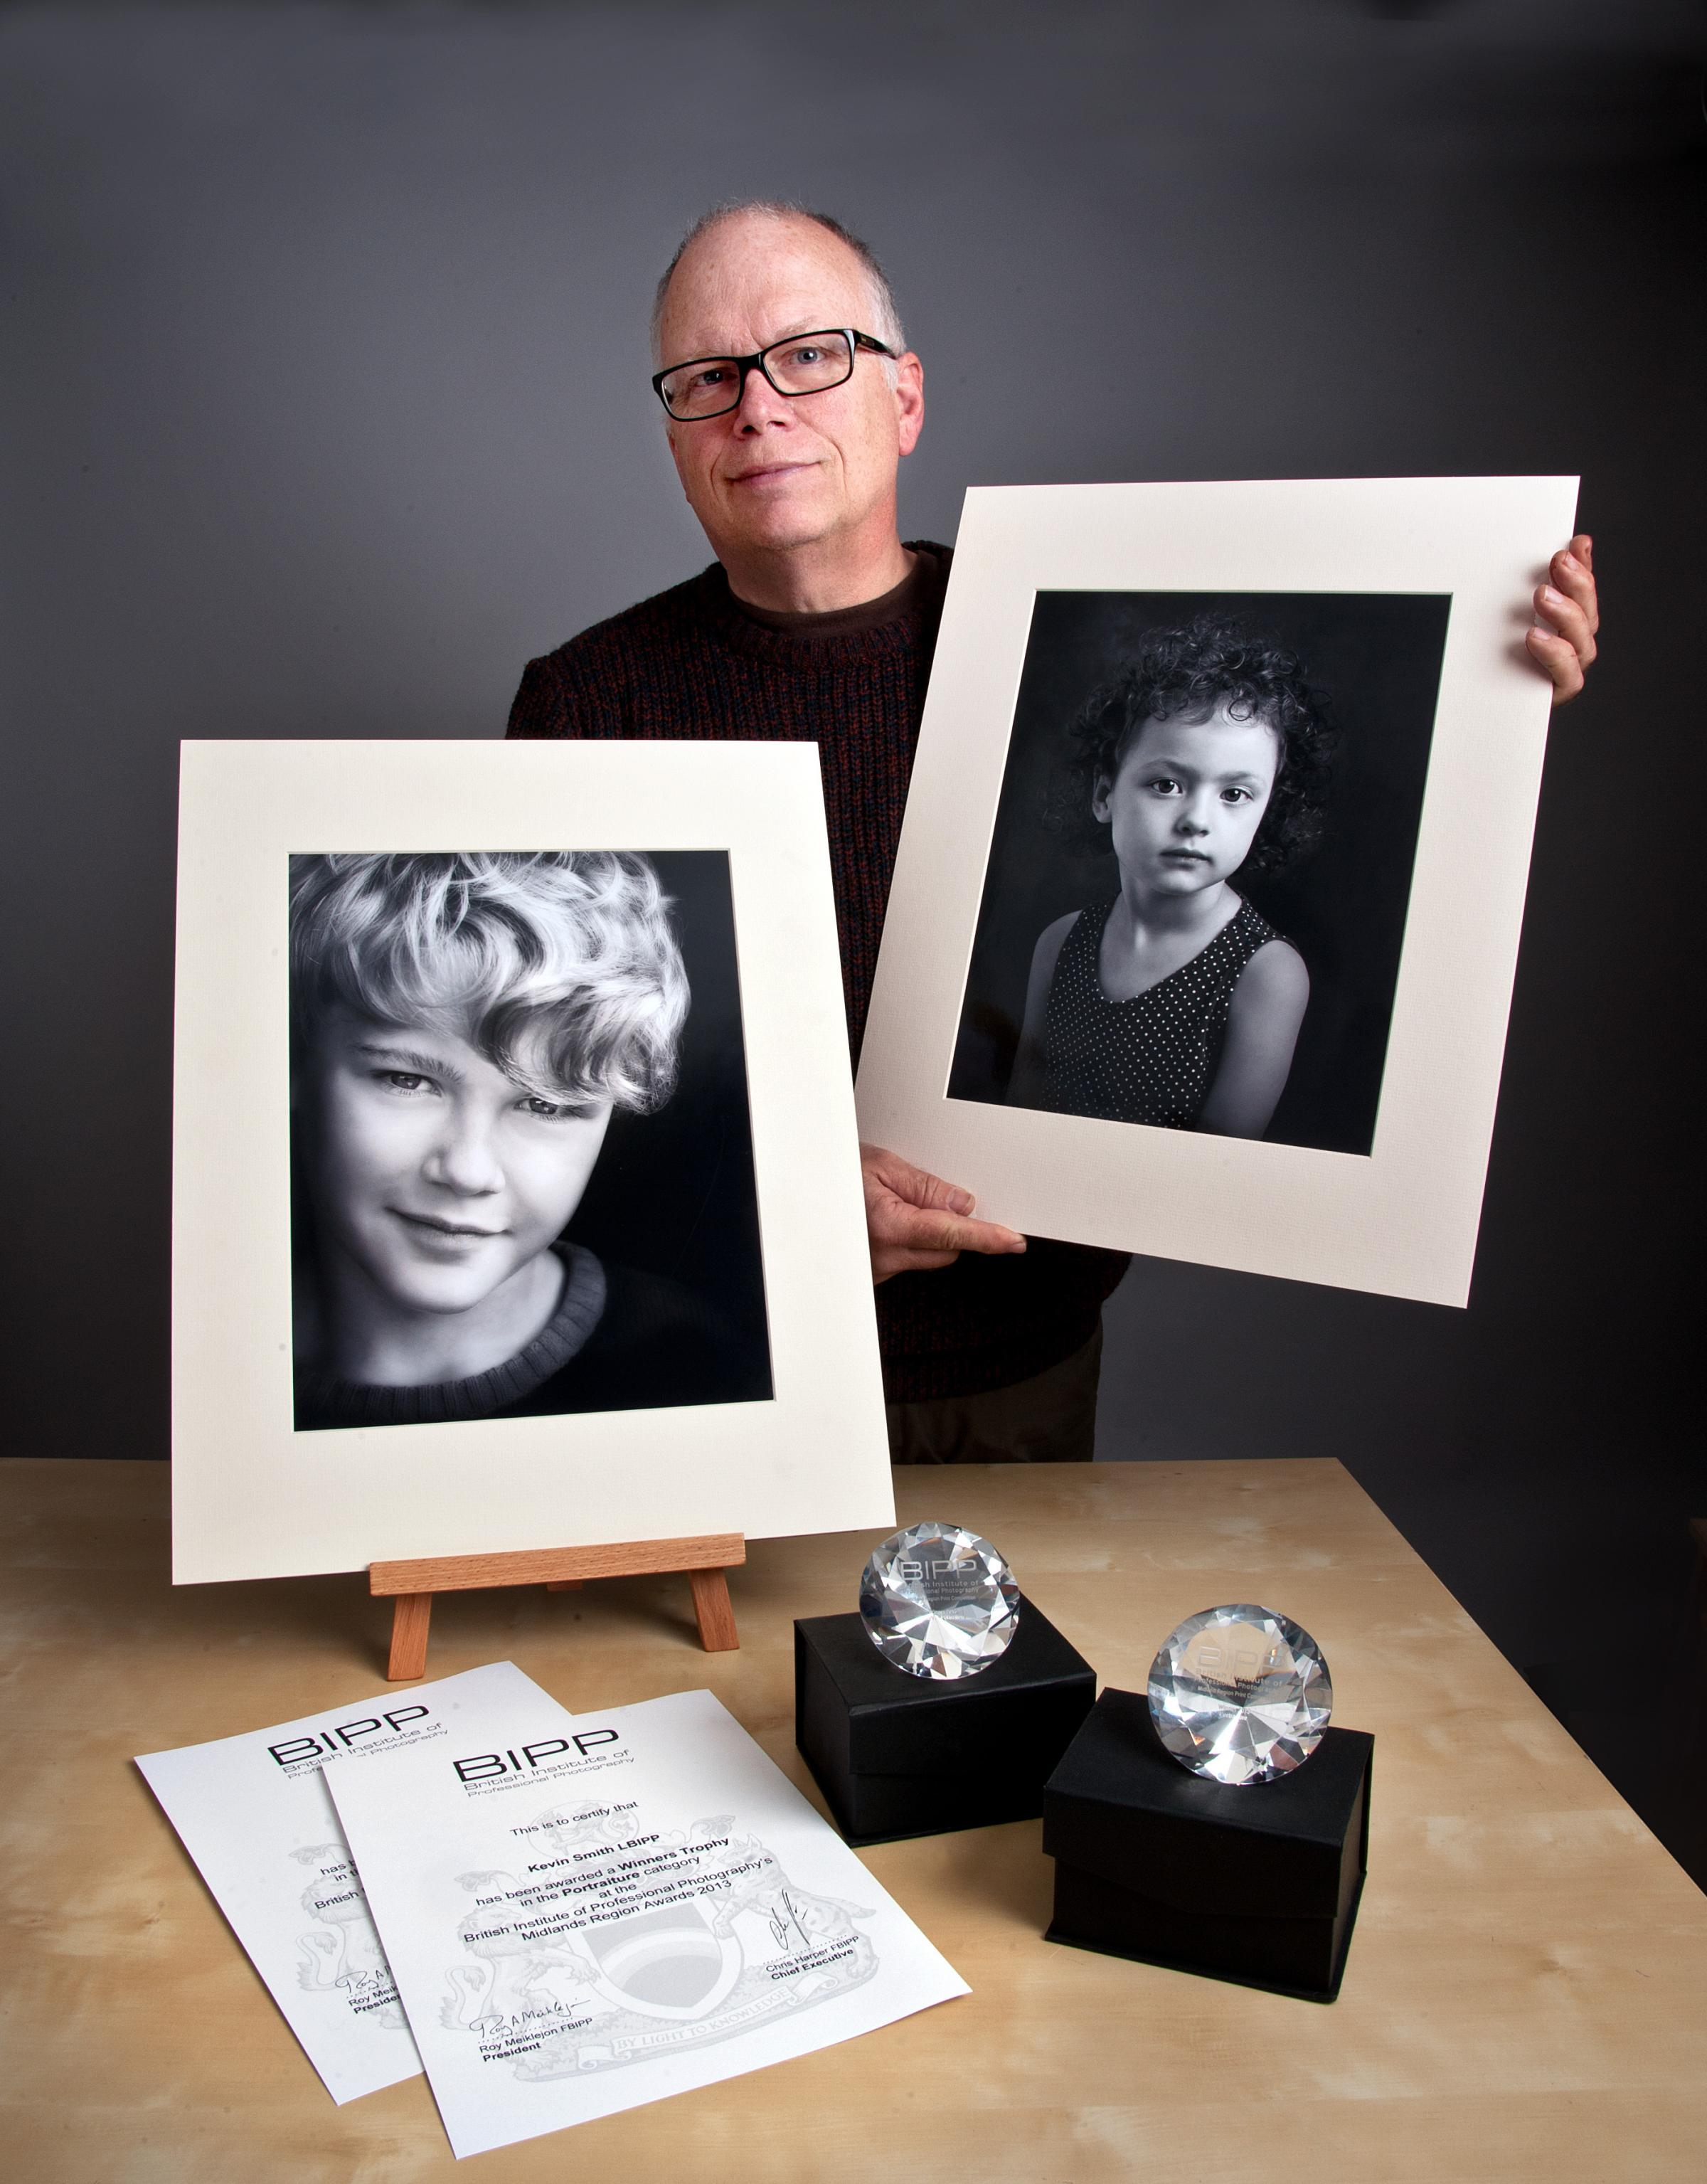 Kevin Smith with his winning images and trophies.